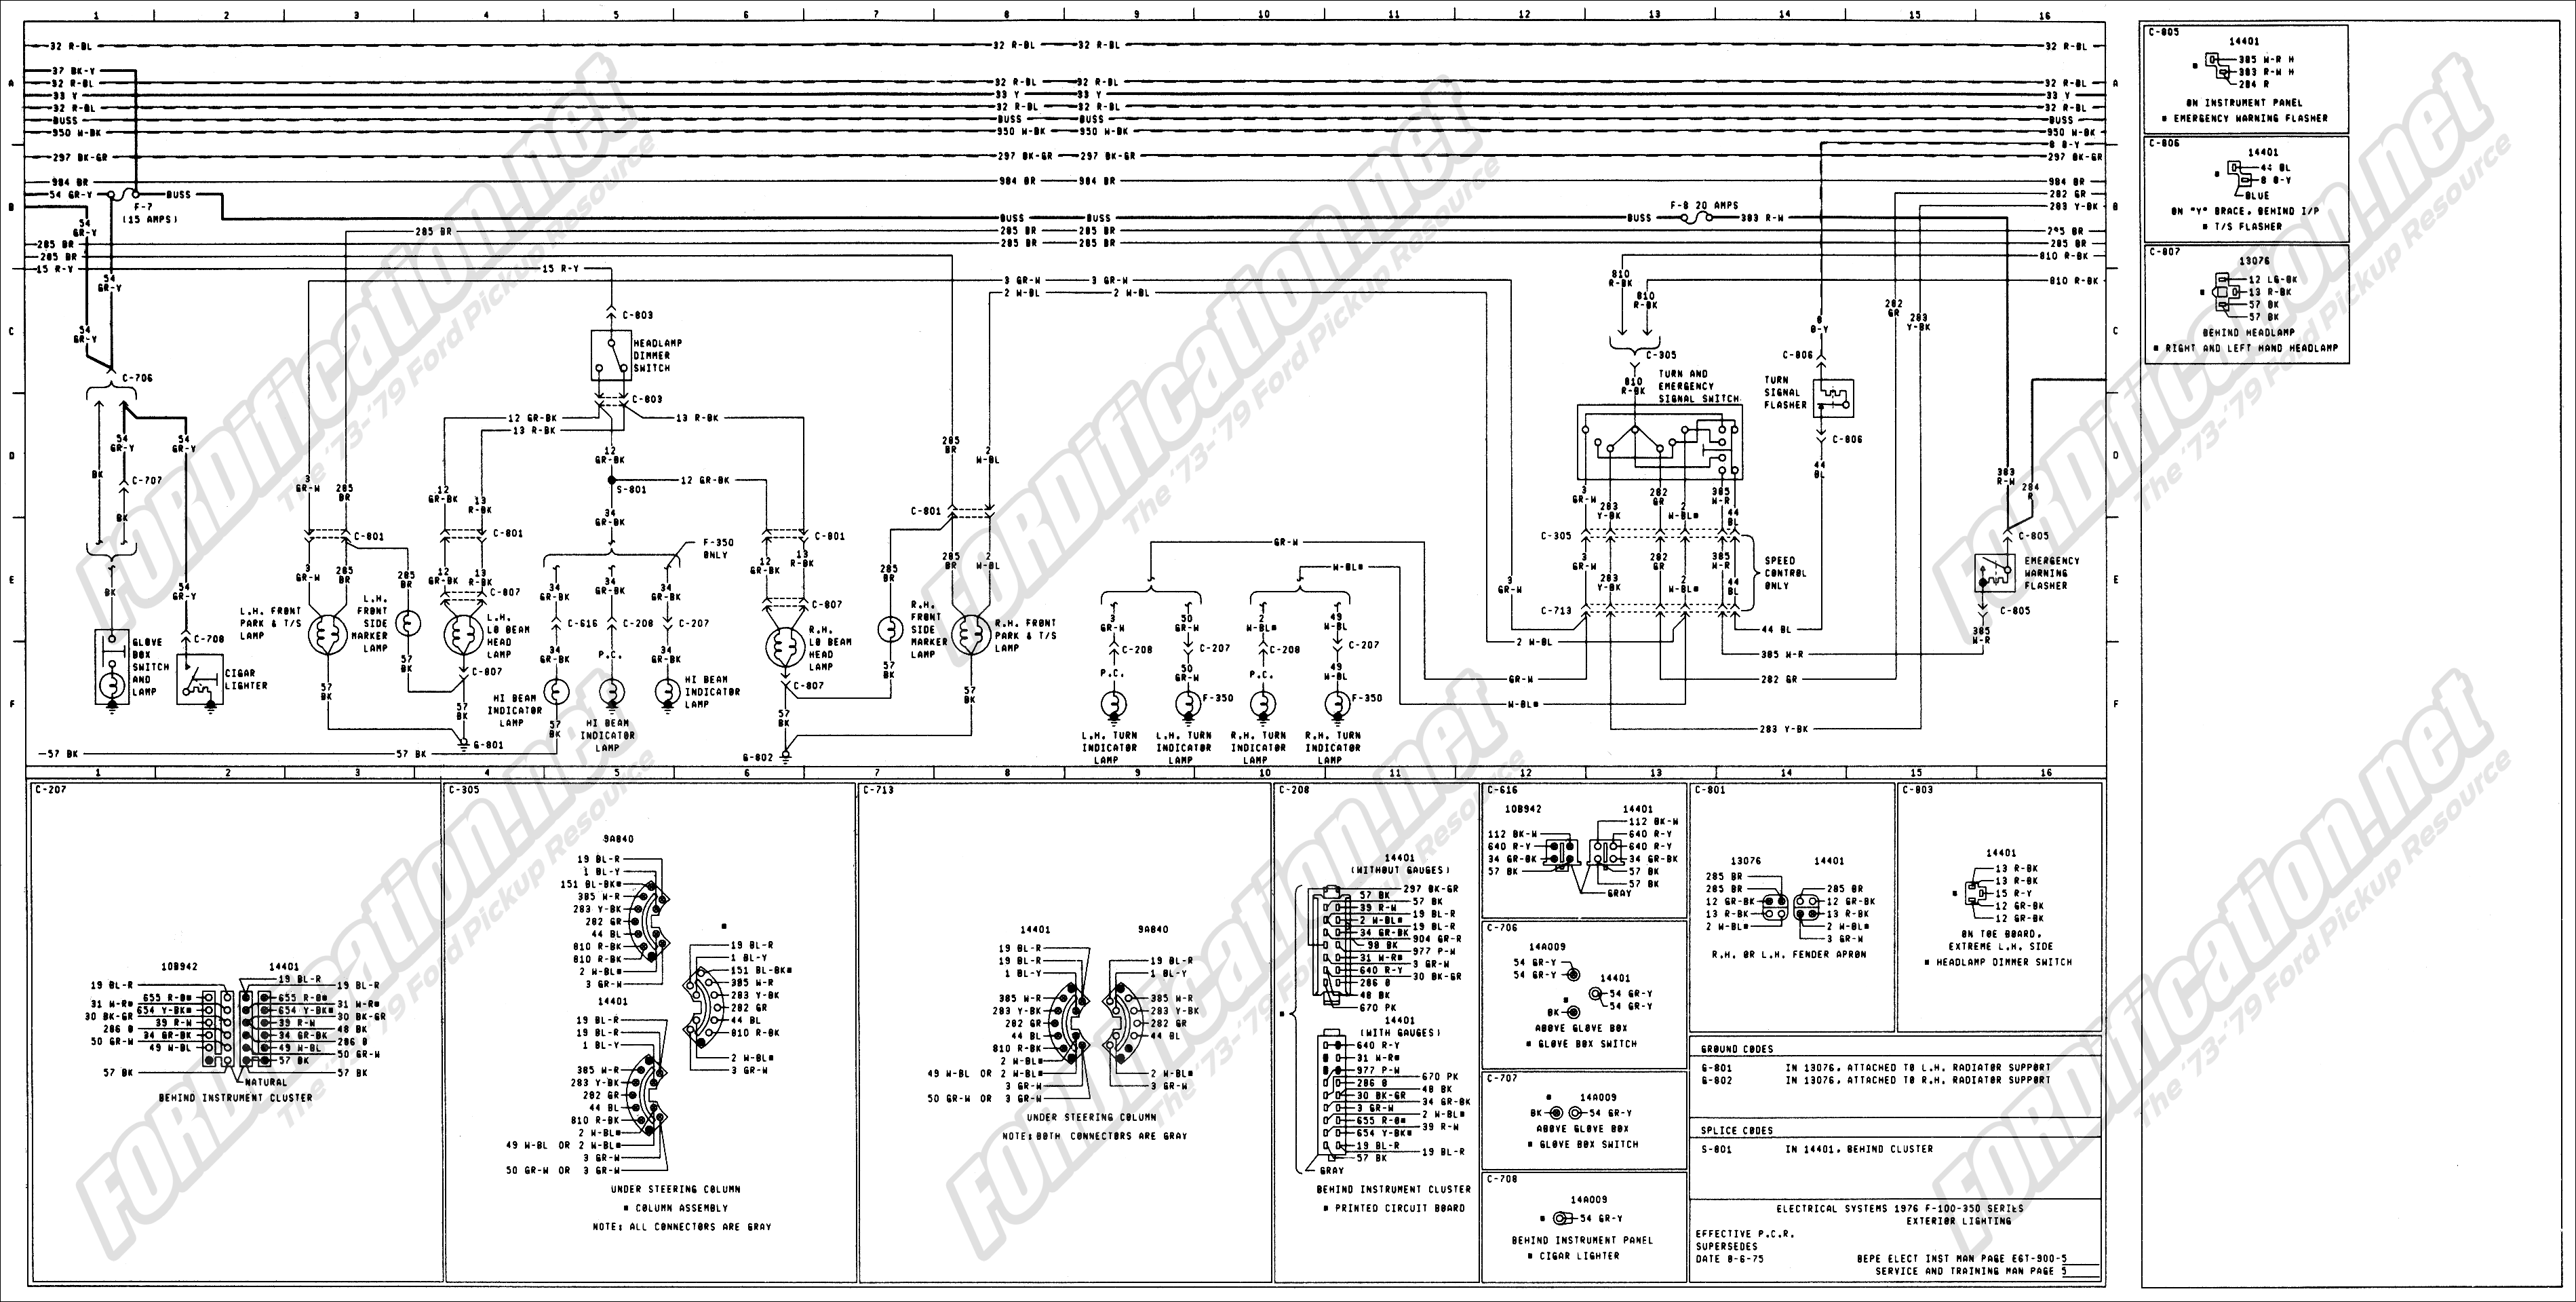 1973 1979 ford truck wiring diagrams schematics fordification net rh fordification net 1969 Ford F100 Wiring Diagram 1973 ford f100 wiring diagram